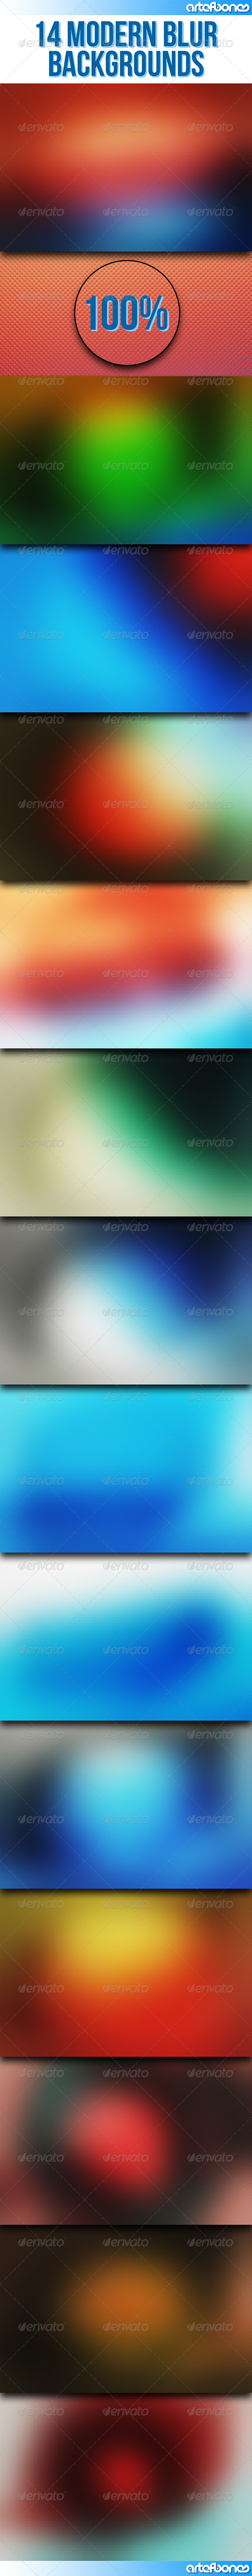 GraphicRiver 14 Modern Blur Backgrounds 8142651